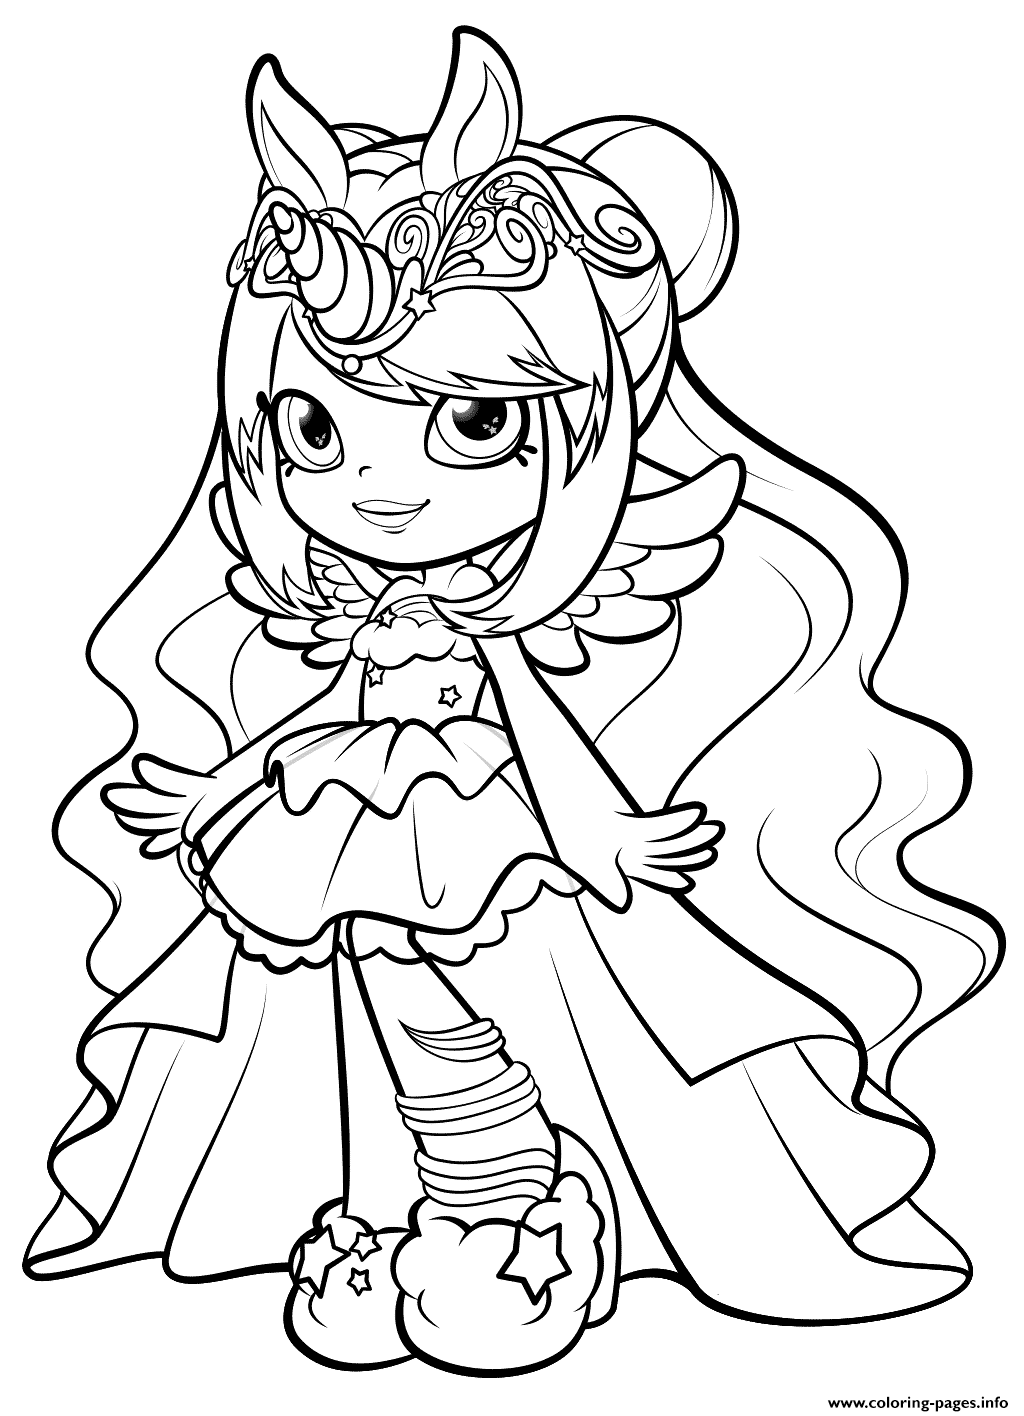 Print Shopkins Mysterbella Wild Style Shoppies Doll coloring pages